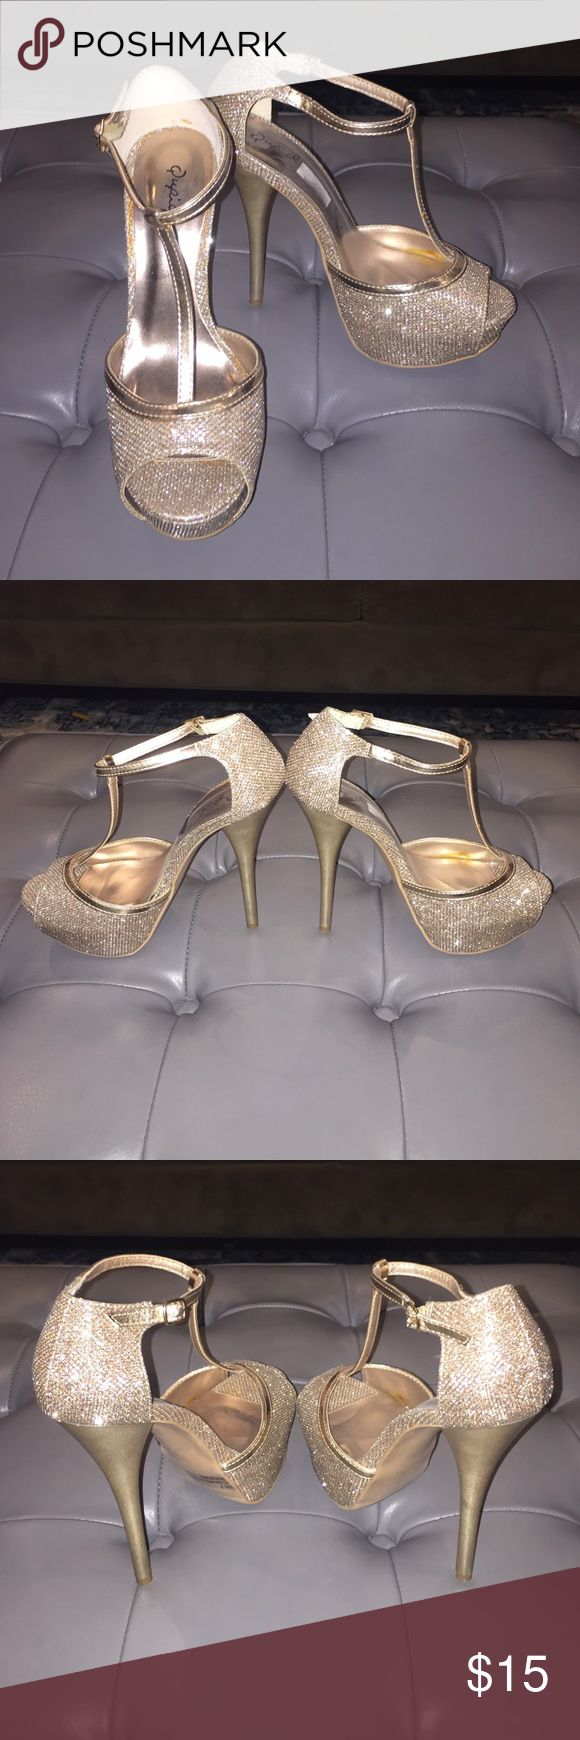 Sparkly rose gold platform heels size 7 Gorgeous sparkly rose gold platform heels, would be a great heel to wear for New Years Eve! Worn once, like new Qupid Shoes Heels